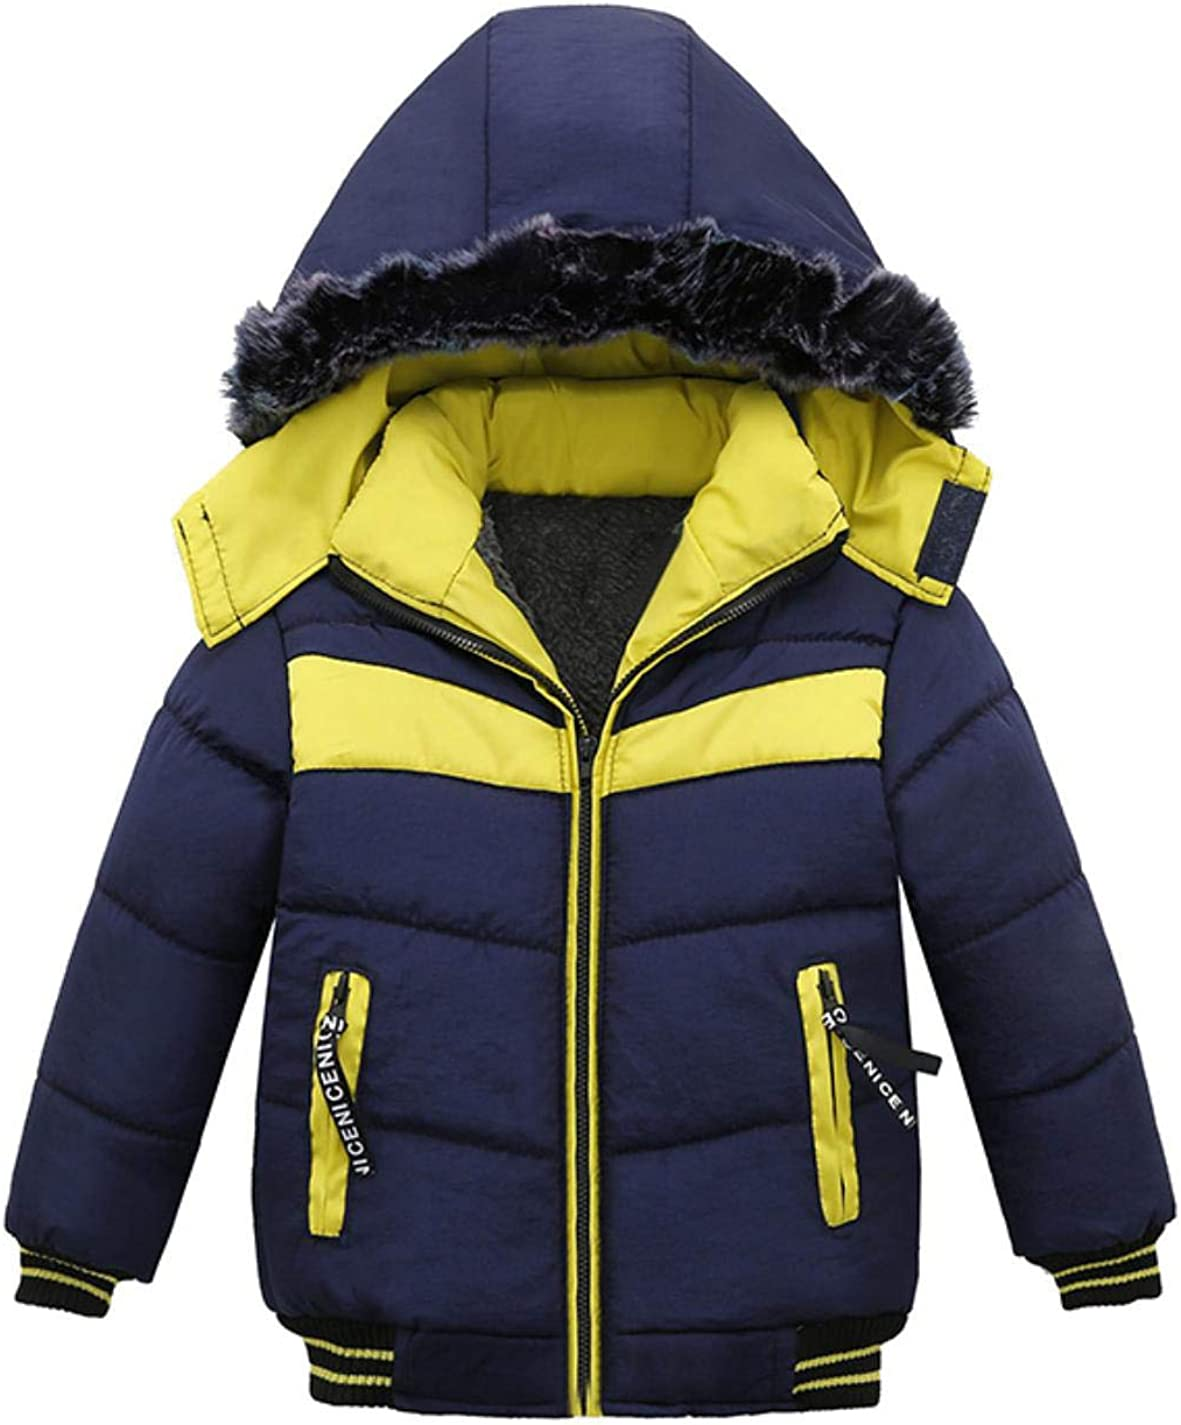 LzCxZDKN Baby Boys Fashion Jacket Kids Hooded Warm Outerwear Children Clothes